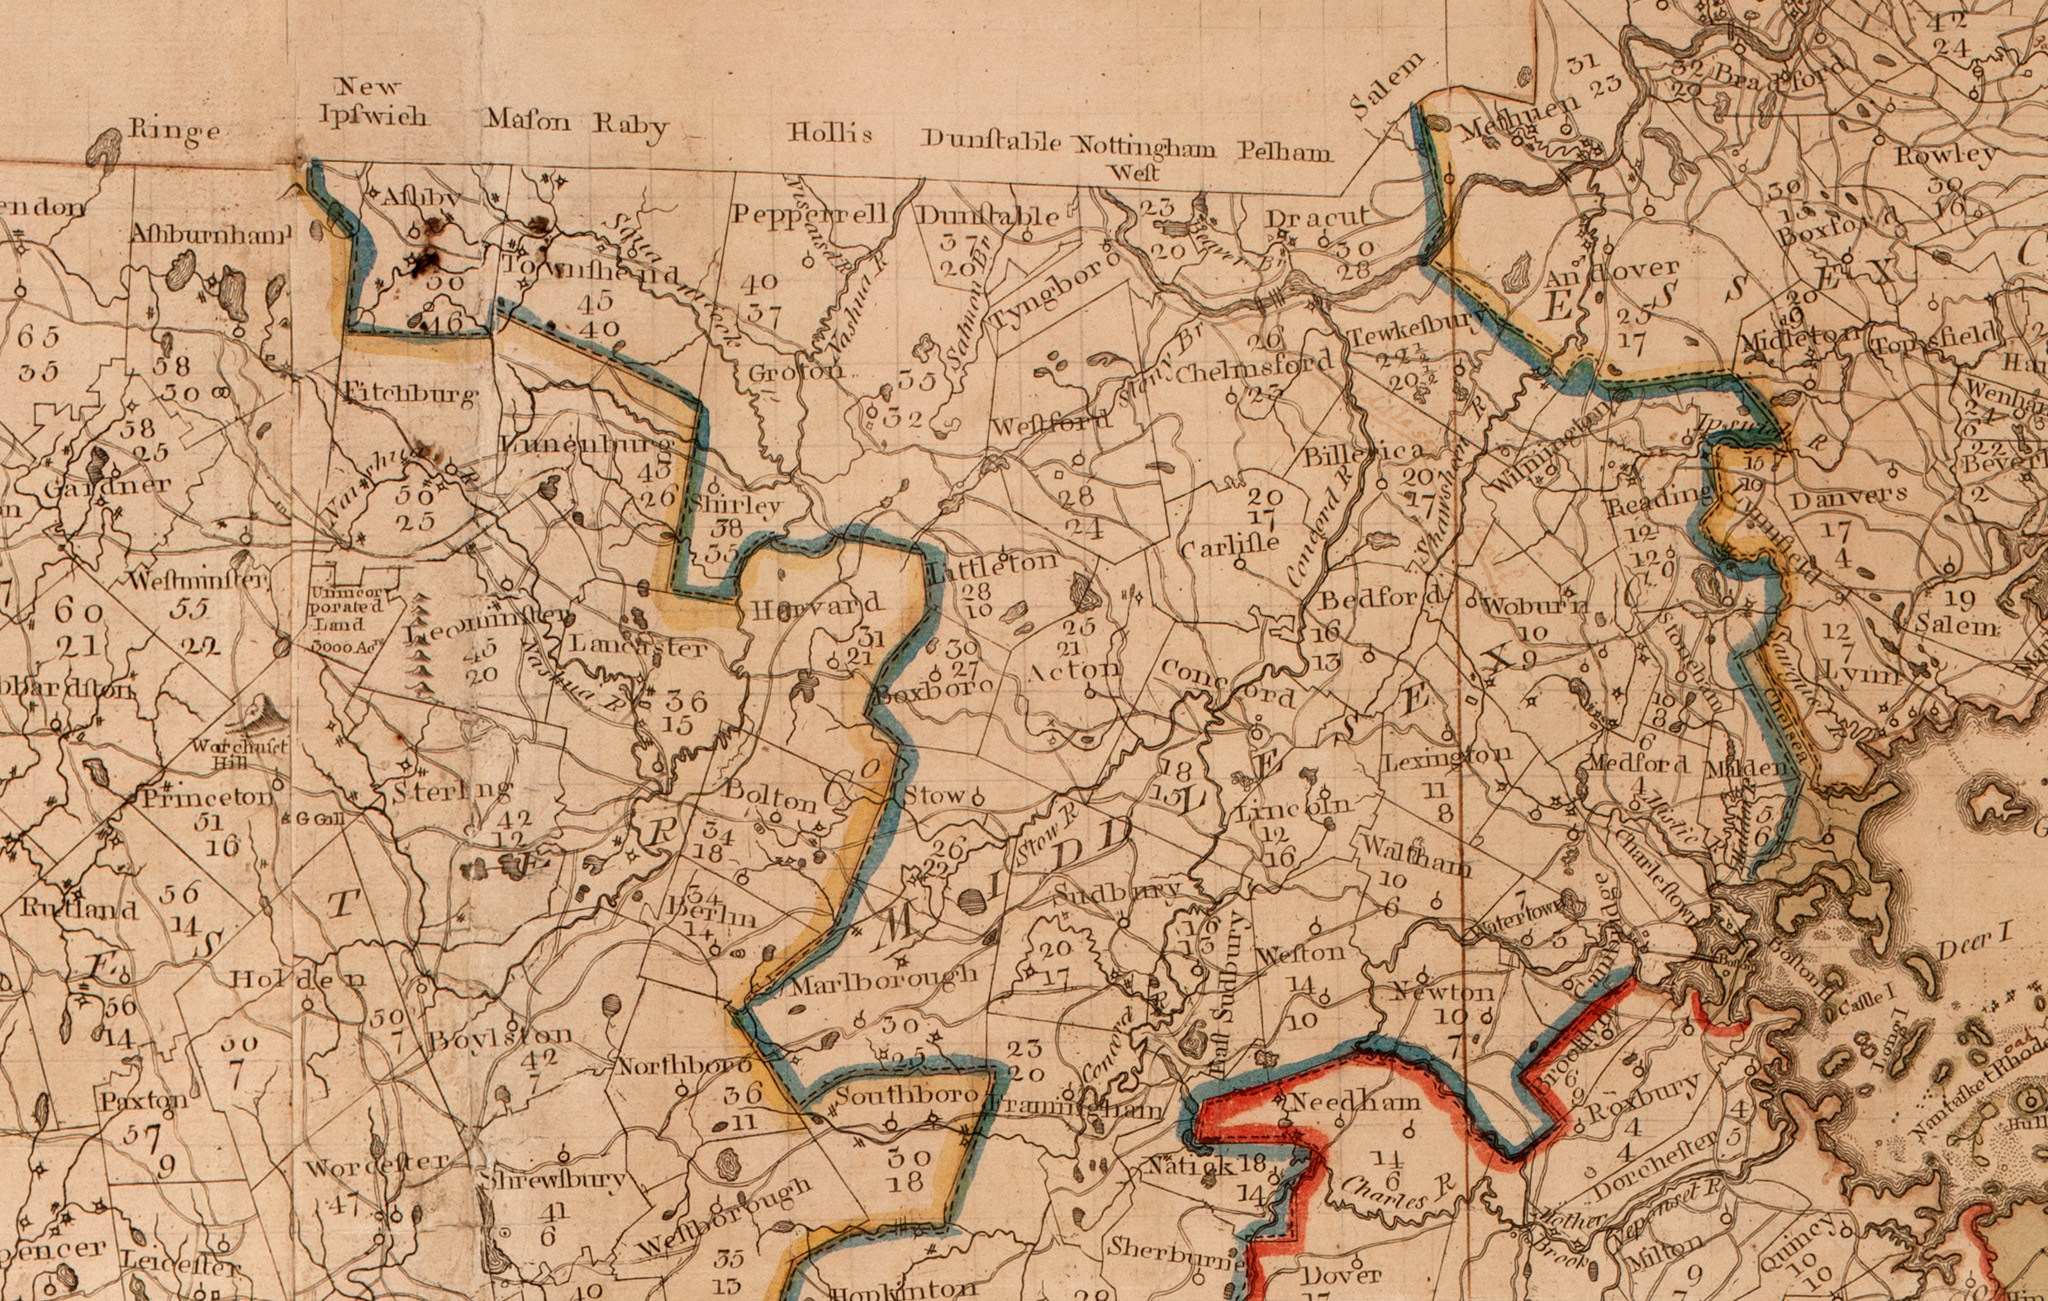 Map of Littleton and Surroundings in 1795